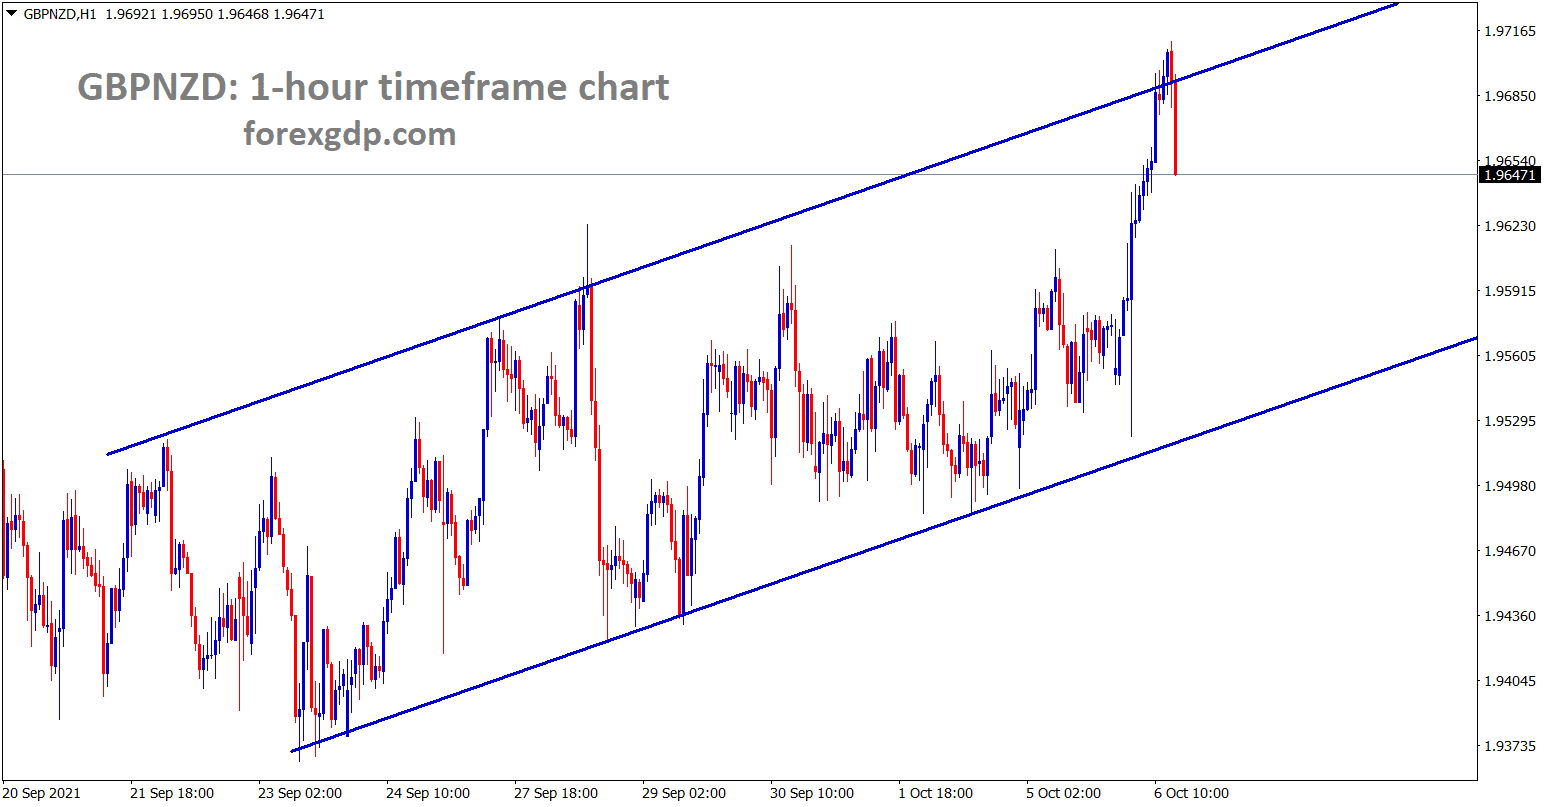 GBPNZD is making a correction from an Ascending channel